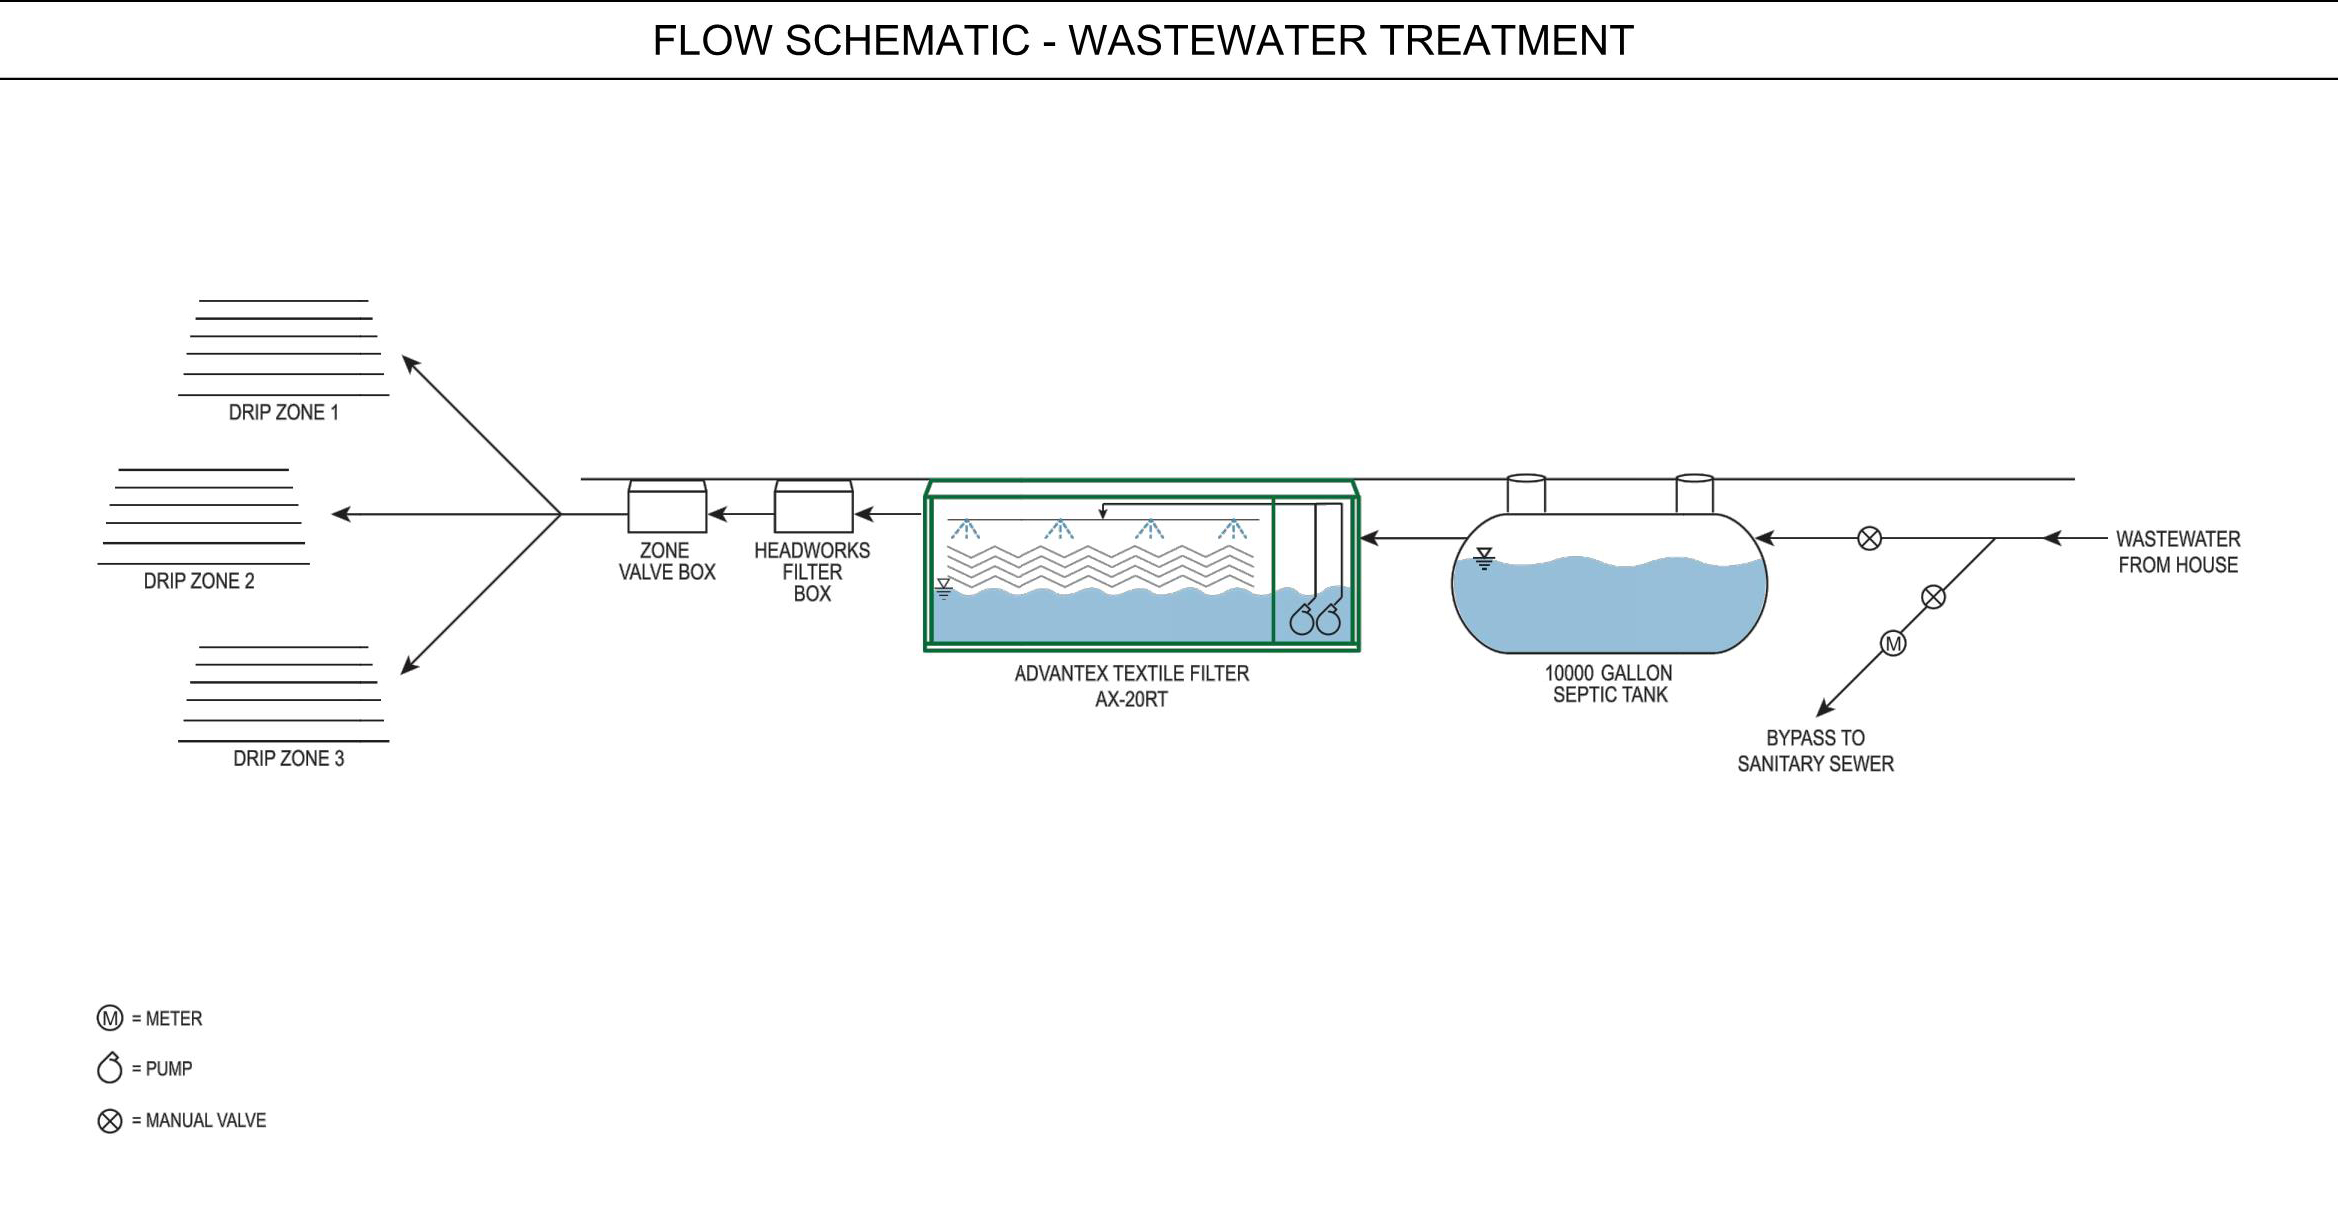 Wastewater Diagram.jpg